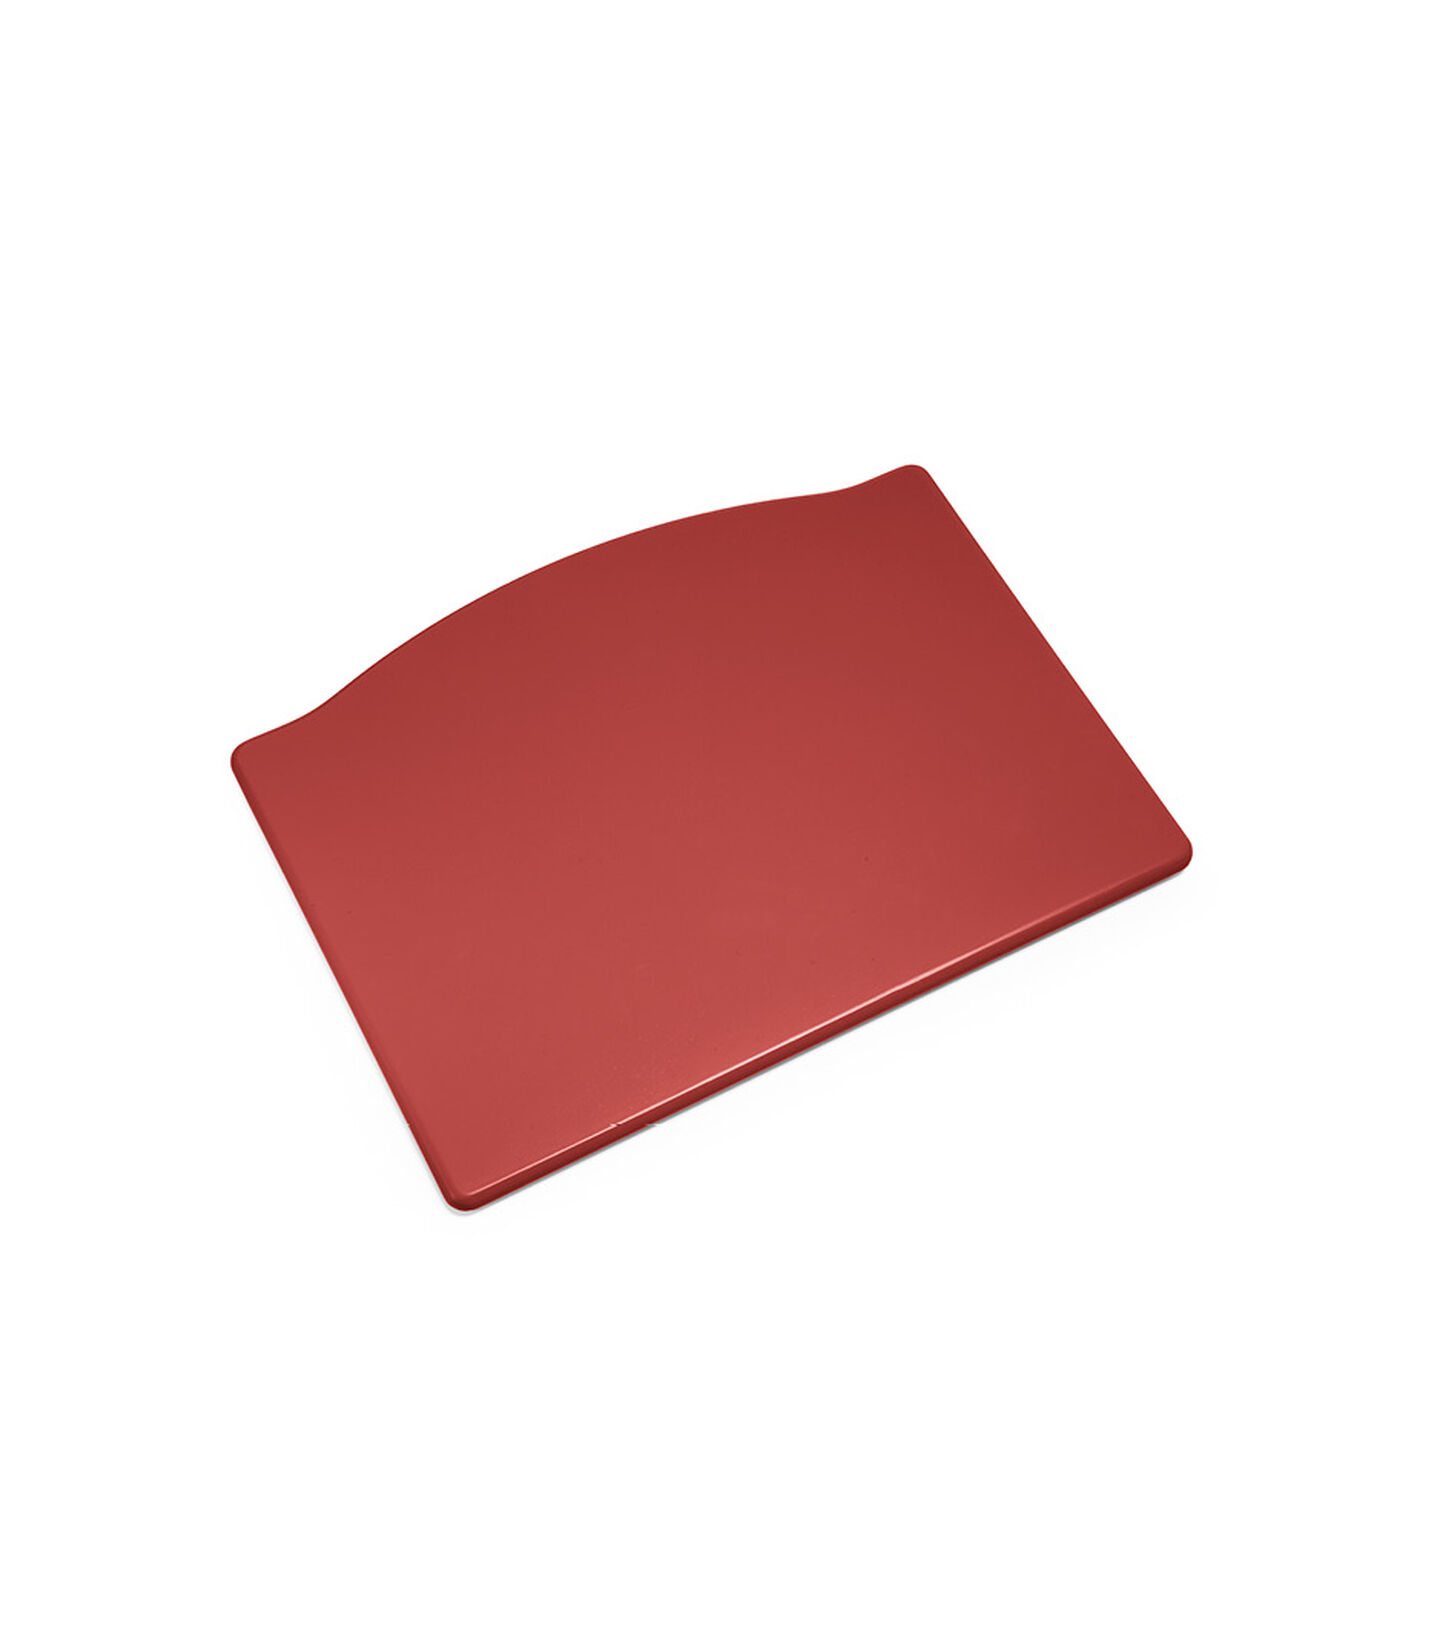 Tripp Trapp® Footplate Warm Red, Warm Red, mainview view 2